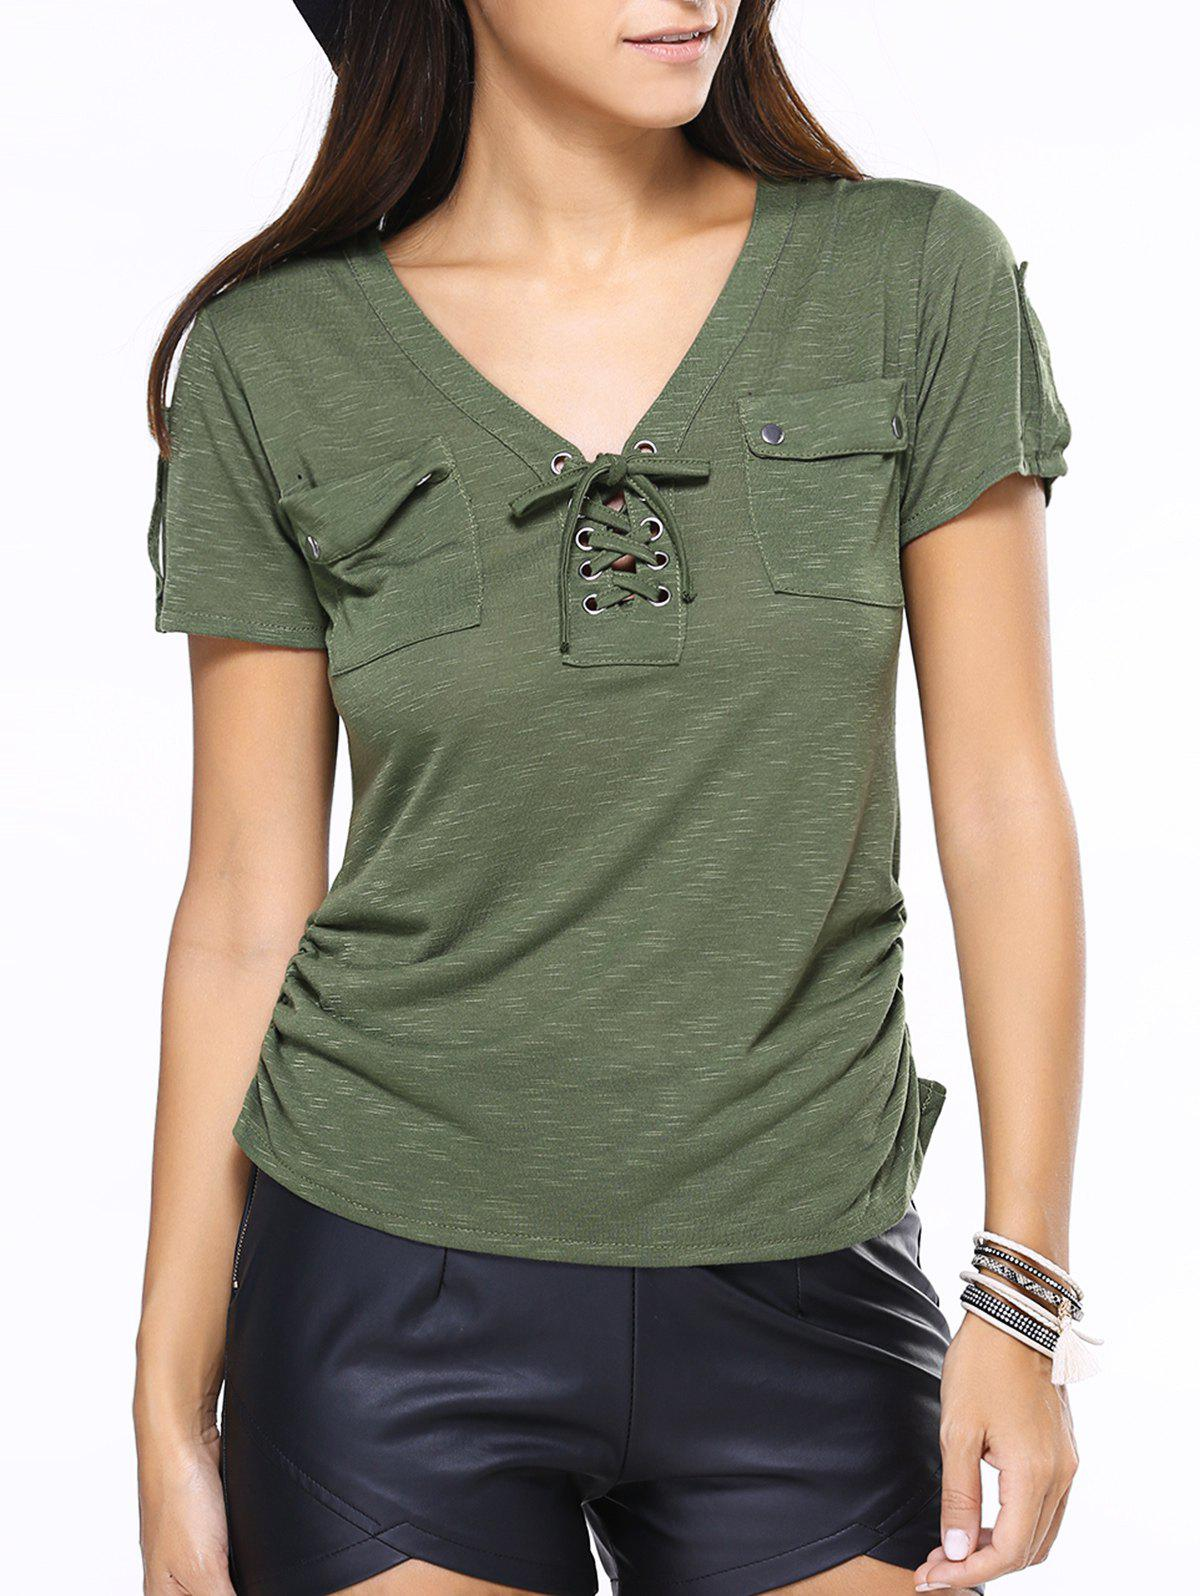 V-Neck Lace-Up Short Sleeve T-Shirt - GREEN XL